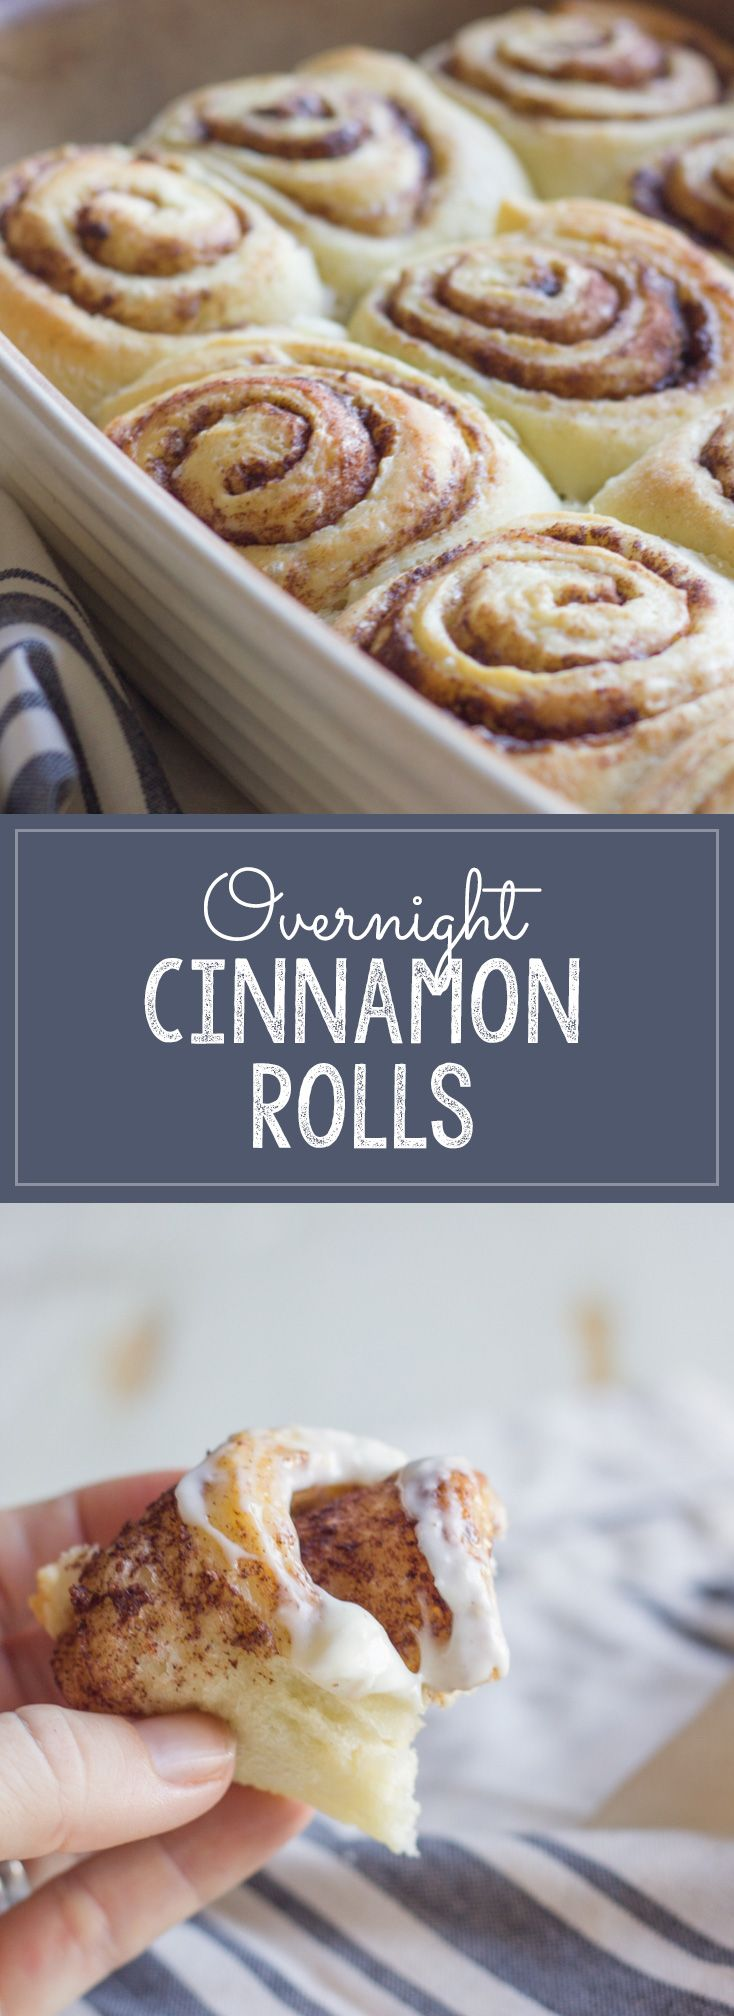 Overnight Cinnamon Rolls with Cream Cheese Frosting: make them the night before and bake them in the morning.